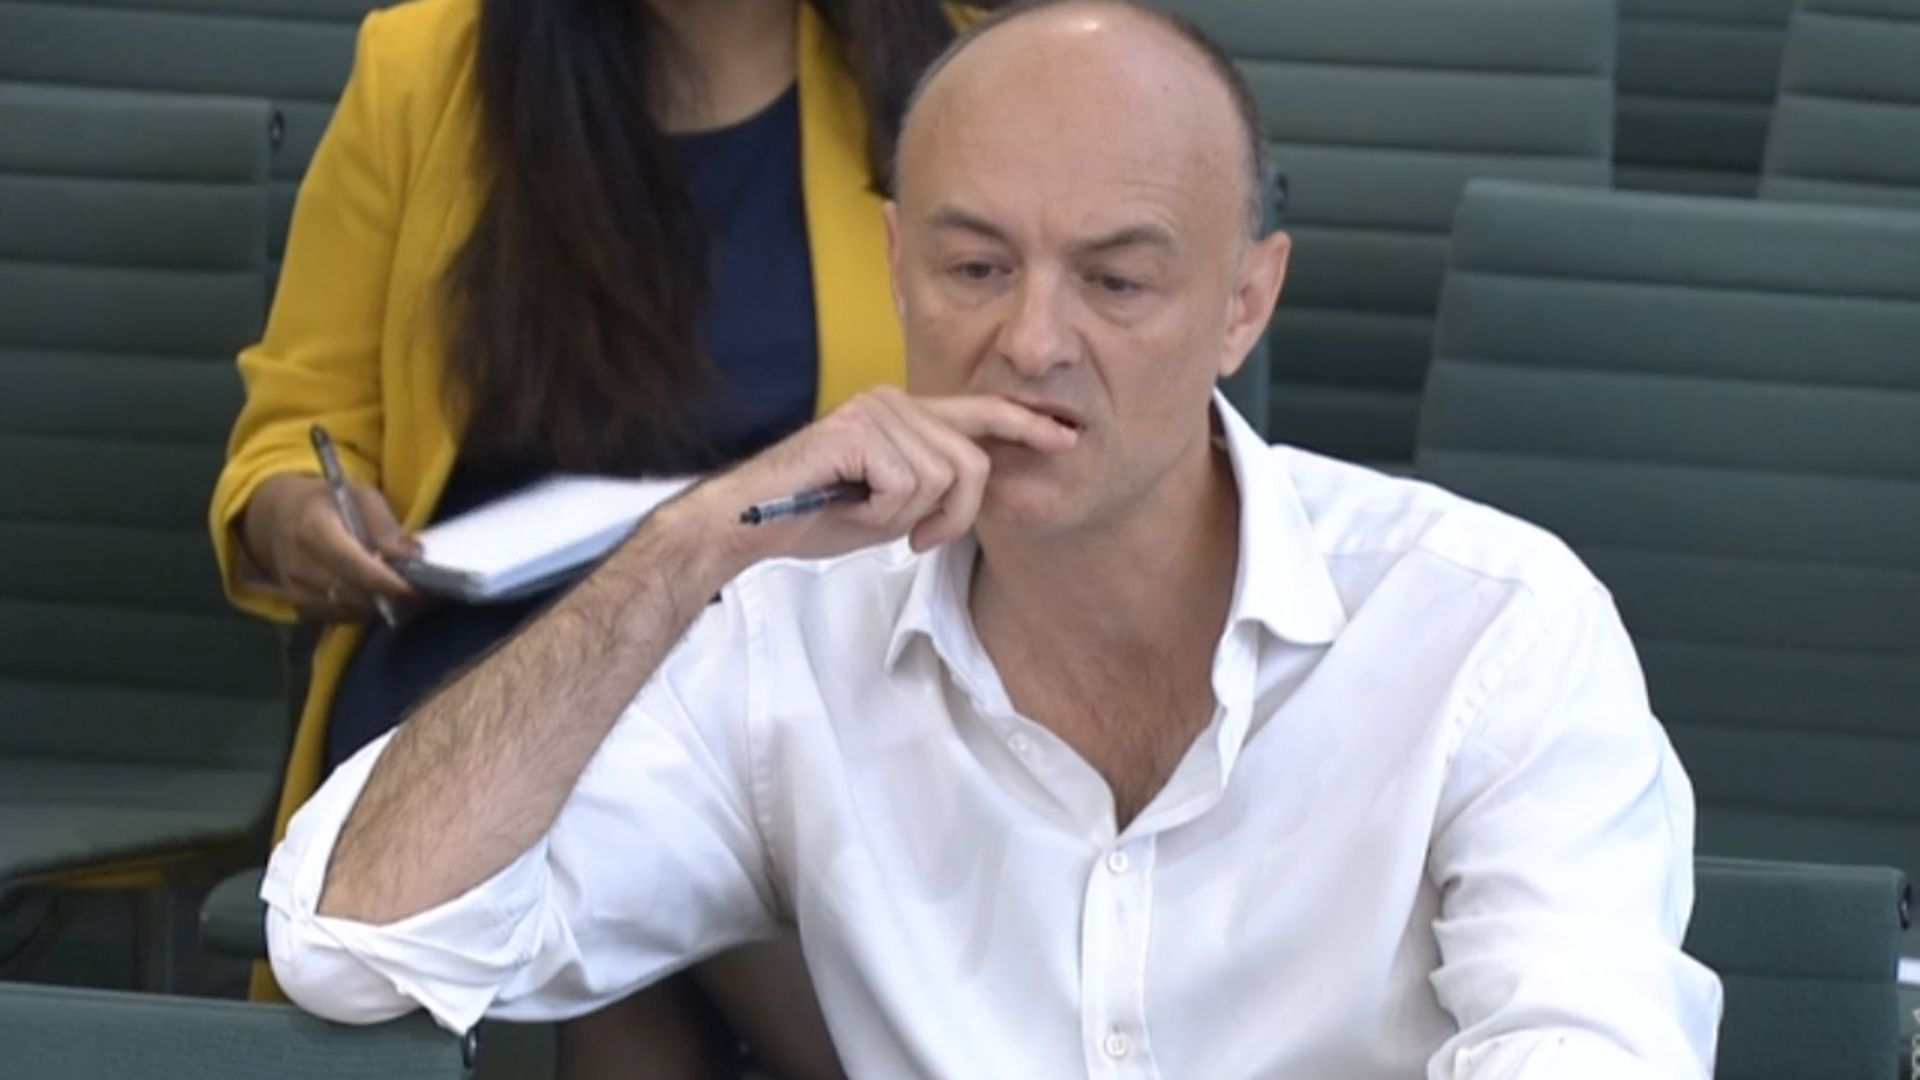 Dominic Cummings, former chief adviser to prime minister Boris Johnson, giving evidence to a joint inquiry of the Commons Health and Social Care and Science and Technology Committees on the subject of coronavirus - Credit: PA